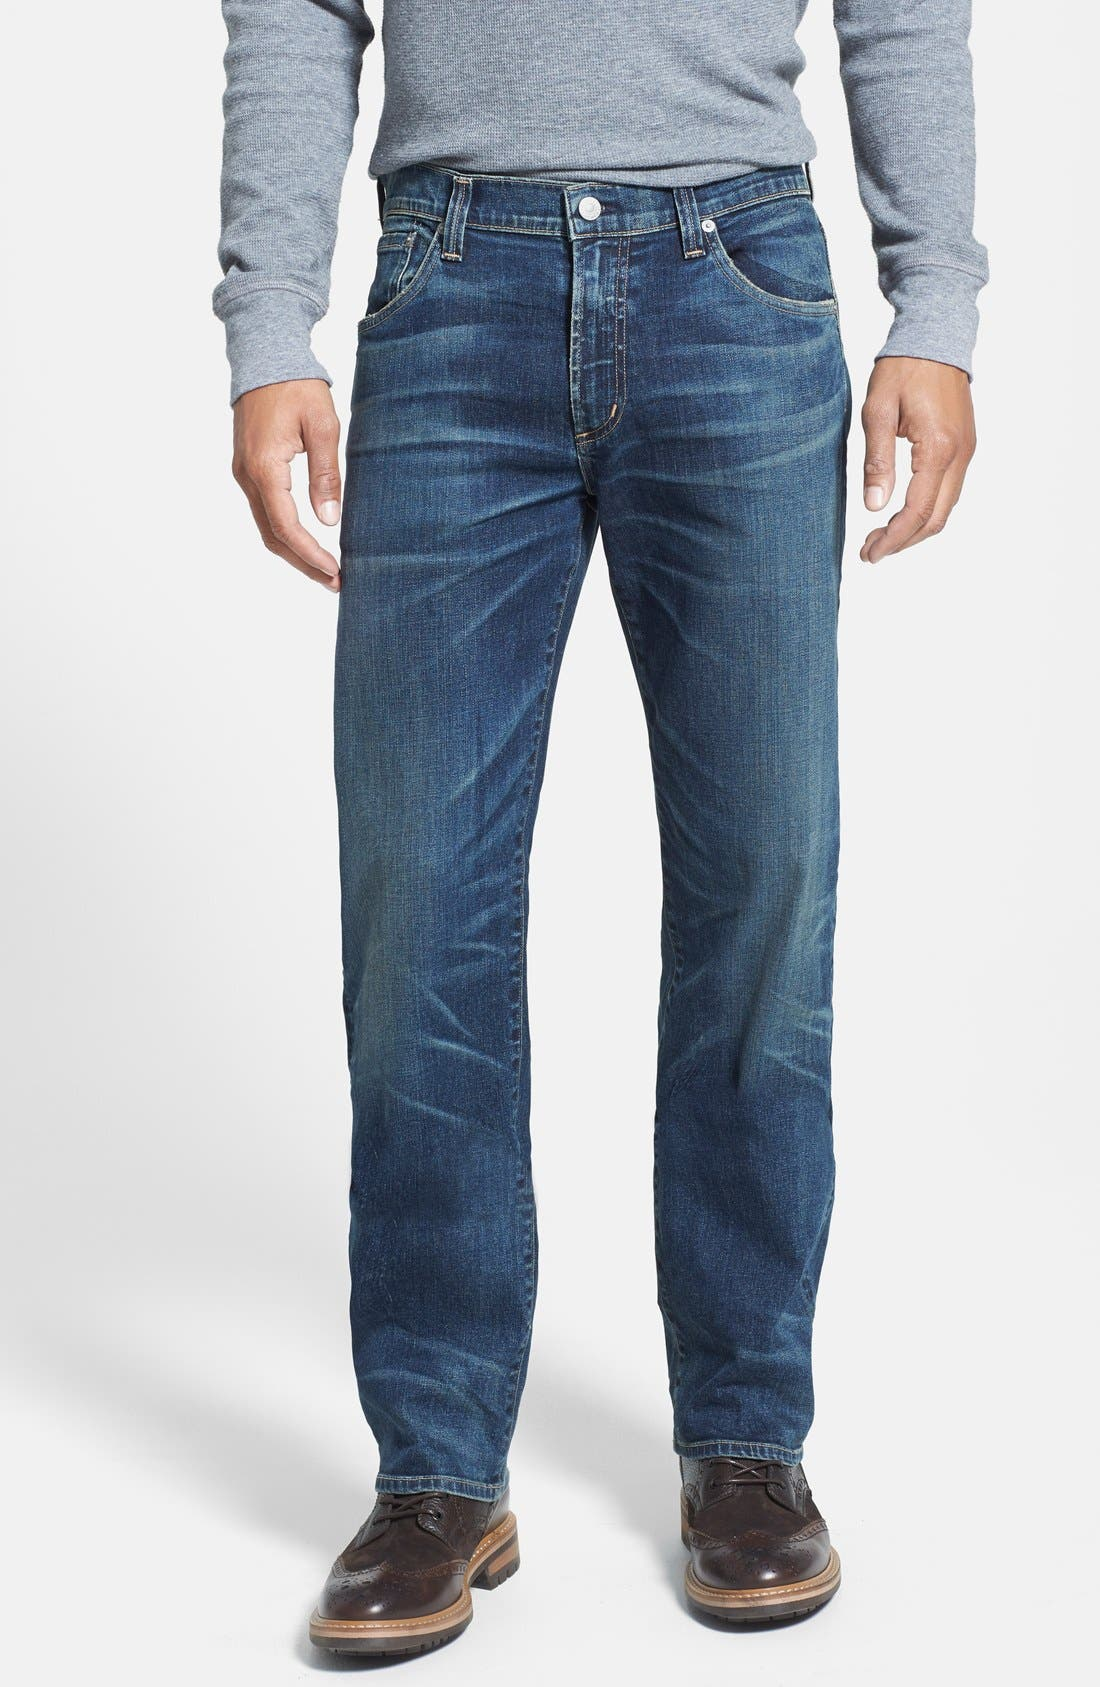 Alternate Image 1 Selected - Citizens of Humanity 'Sid' Classic Straight Leg Jeans (Argo)